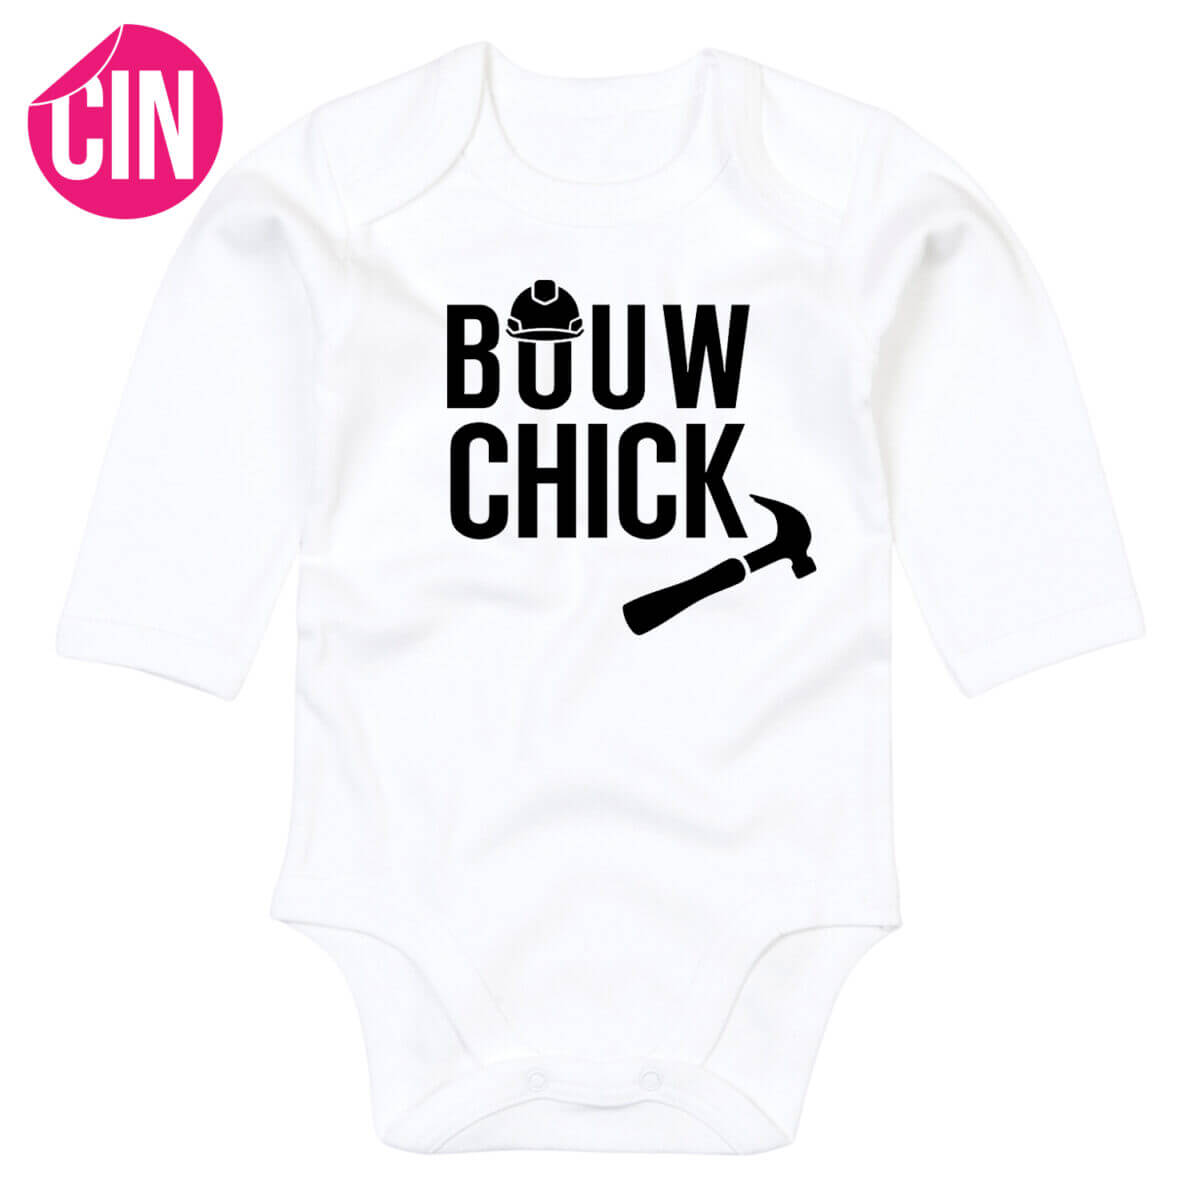 bouw chick cindysigns